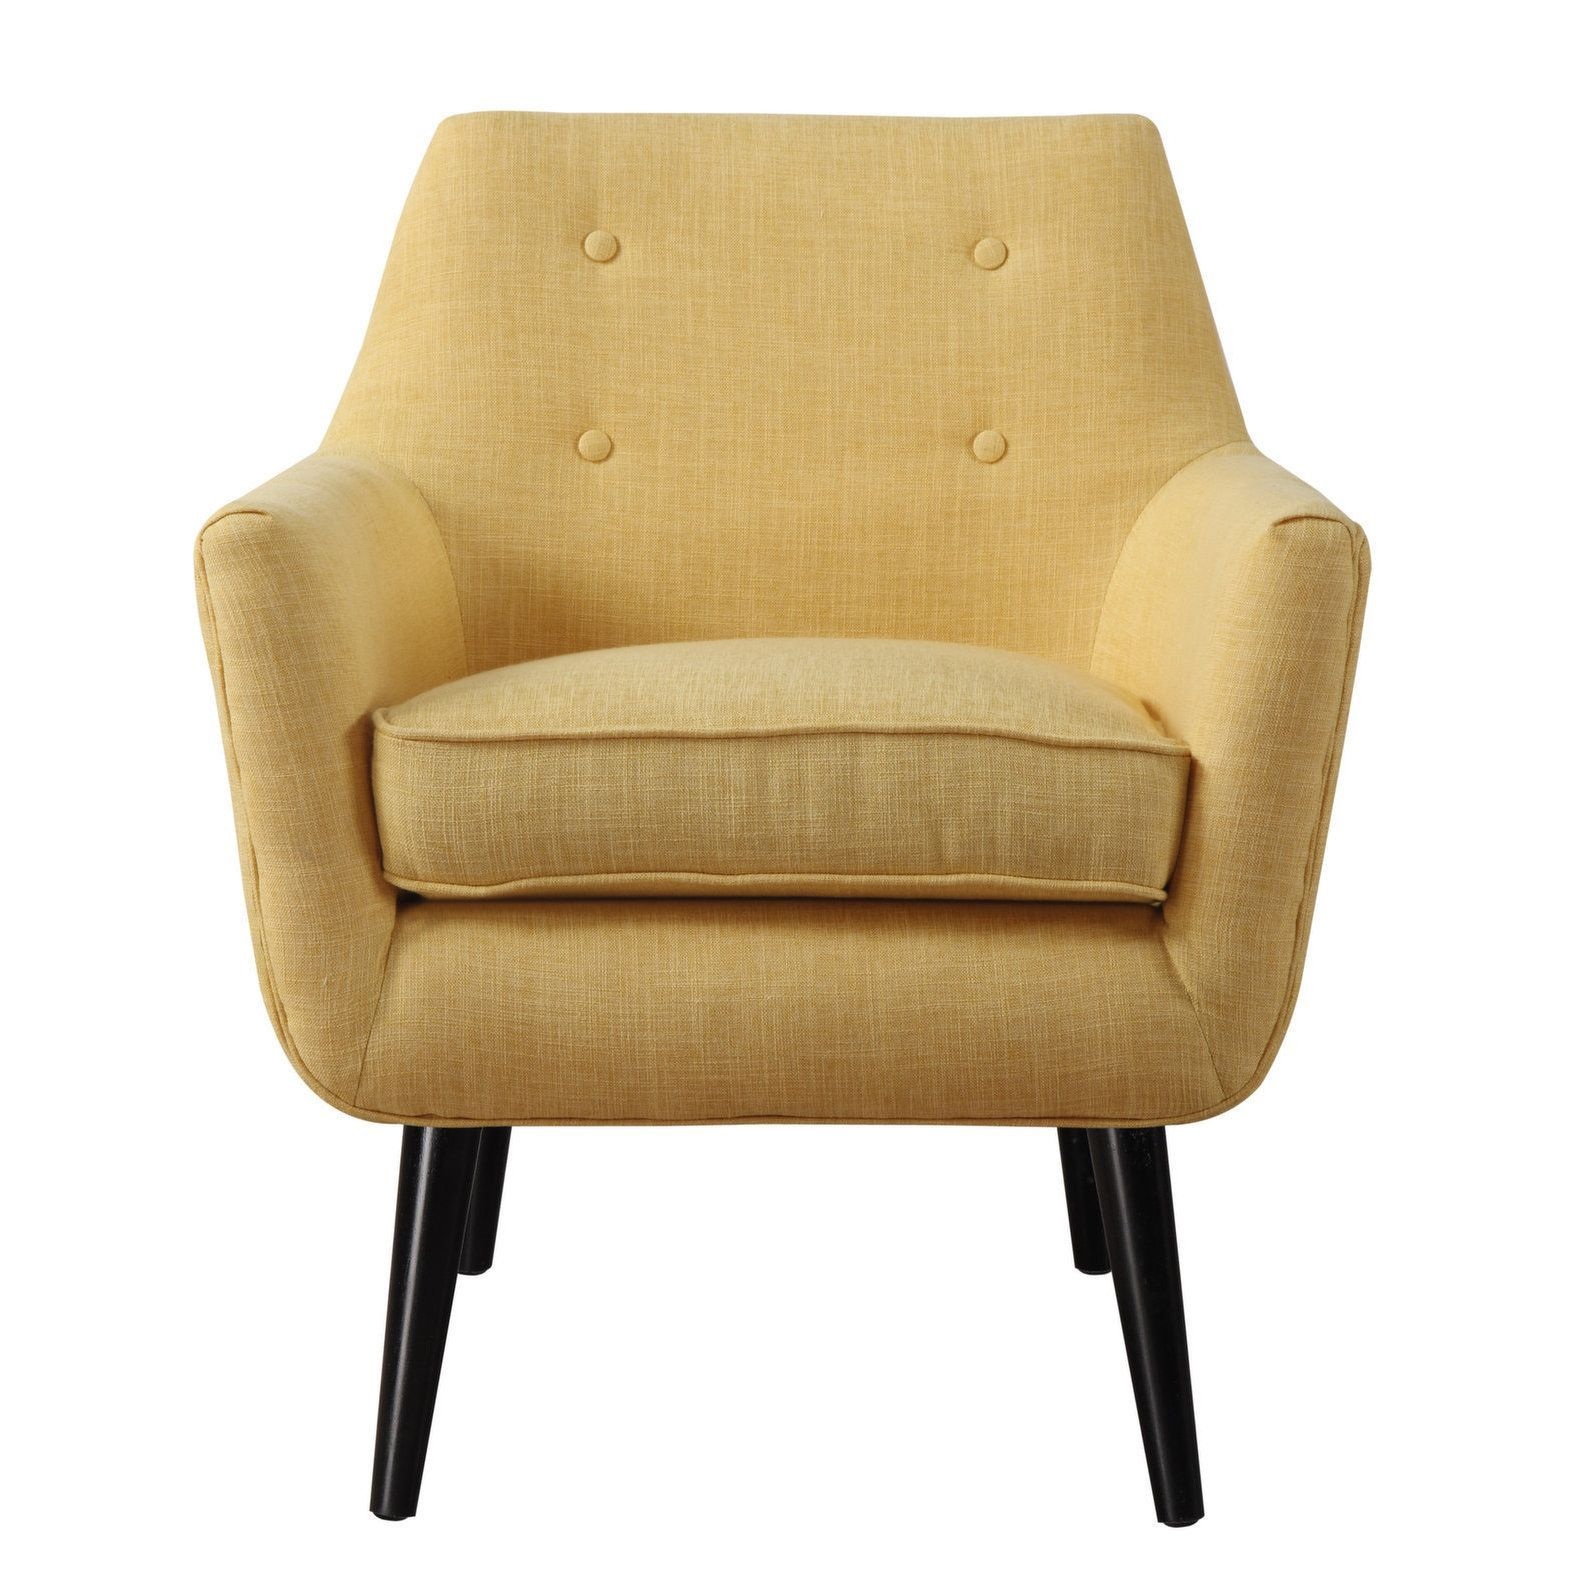 Hand crafted Mustard Yellow Linen Chair with Button Tufting